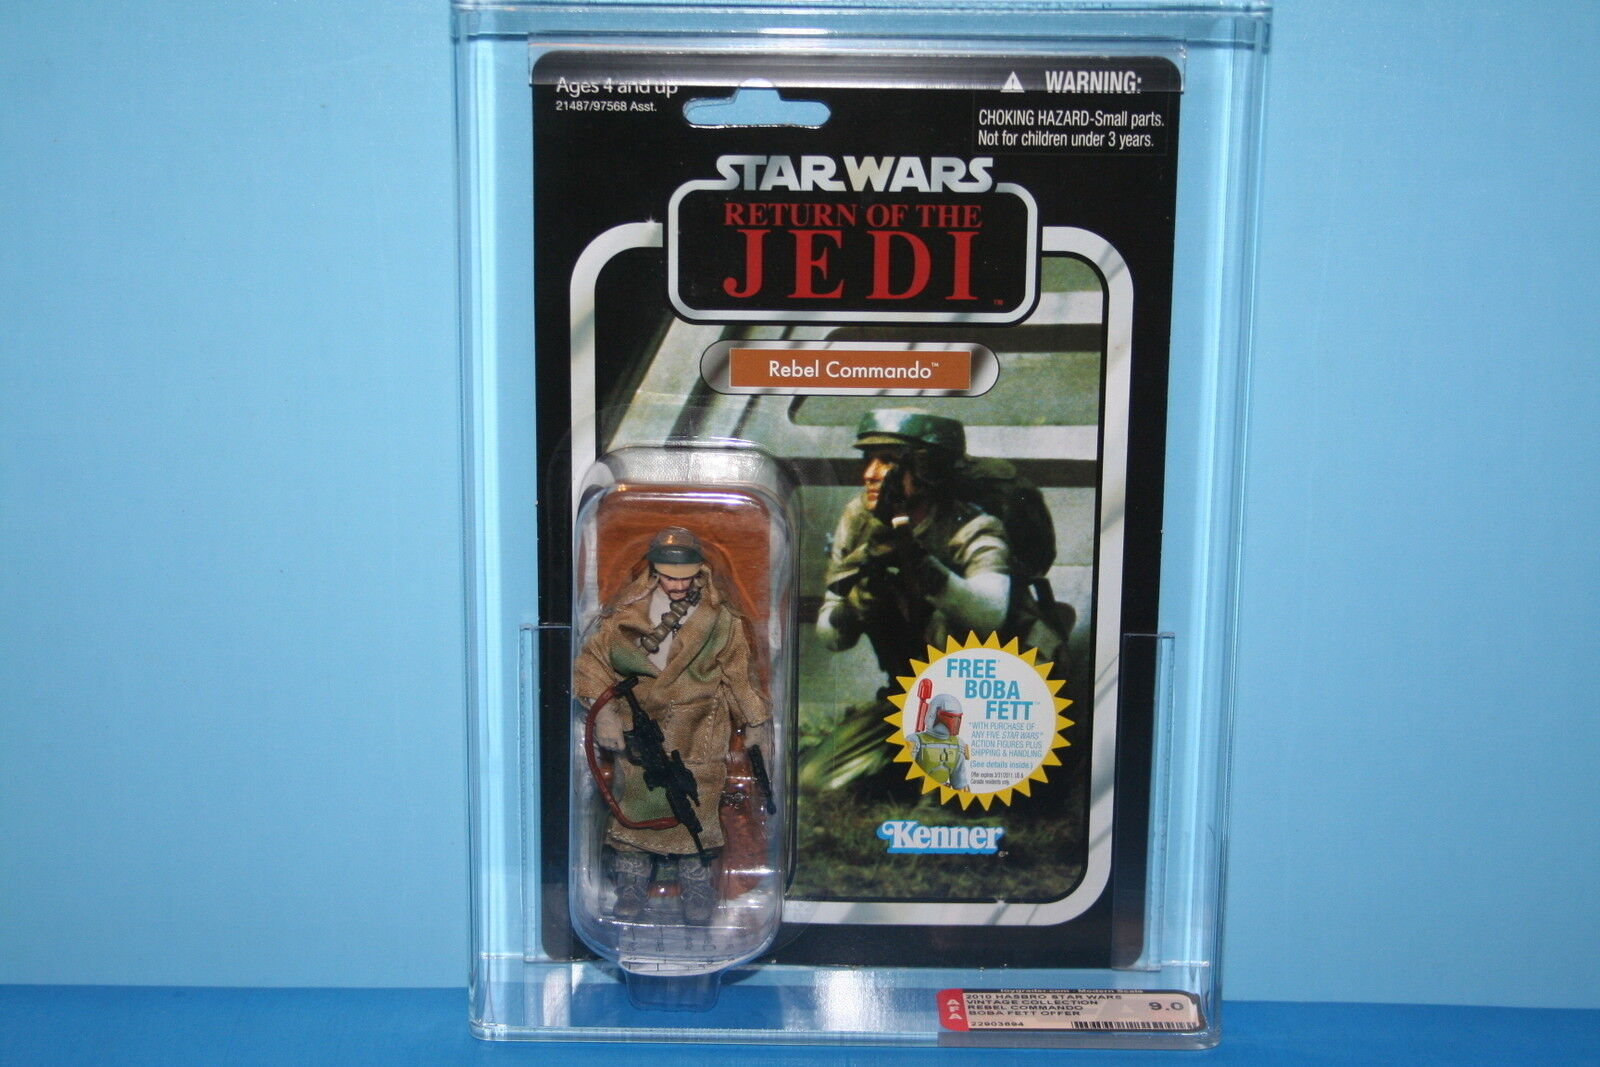 STAR WARS 10 VINTAGE COLLECTION AFA GRADED MINT ON CARD REBEL COMMAND 9.0 FIGURE